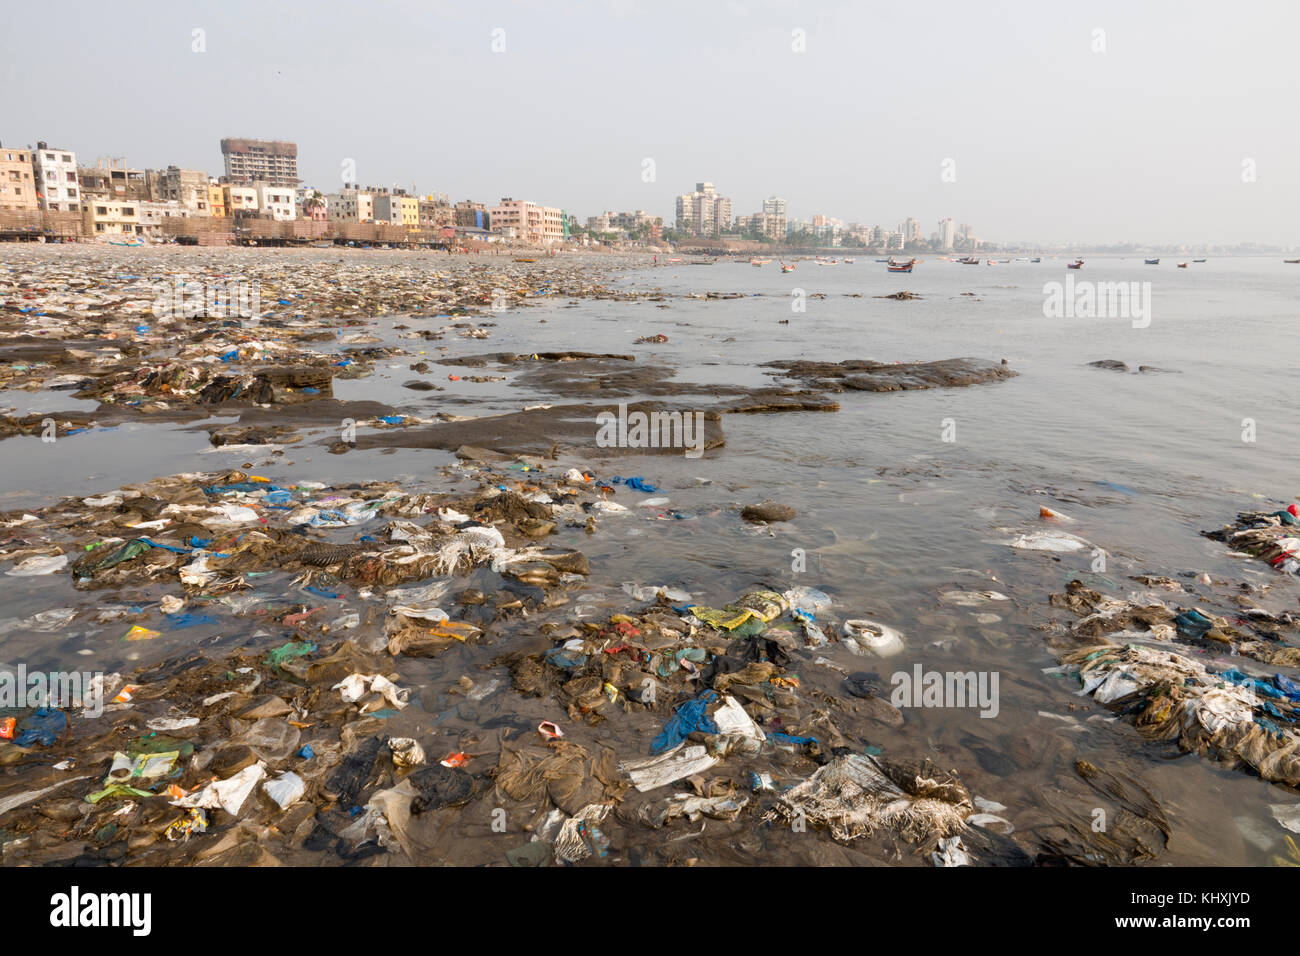 Plastic garbage and other rubbish covers Versova beach, Mumbai, India - Stock Image